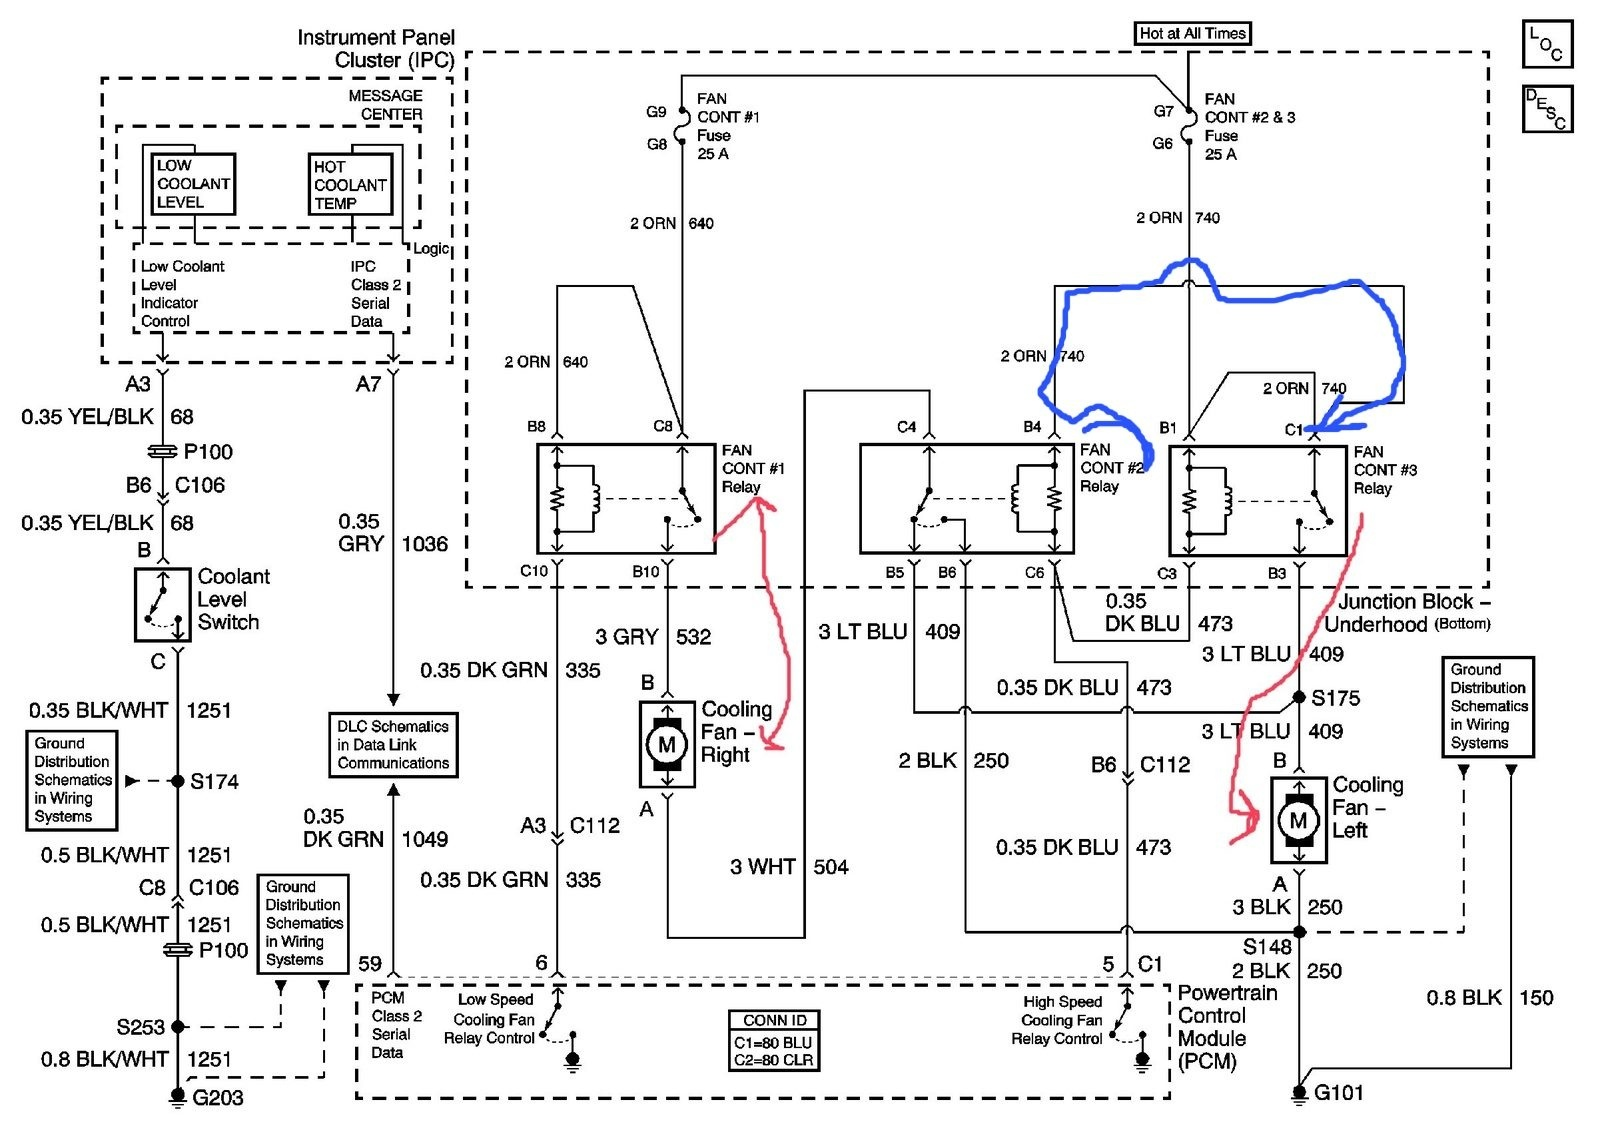 2012 Camry Fuse Box Diagram | Wiring Liry on